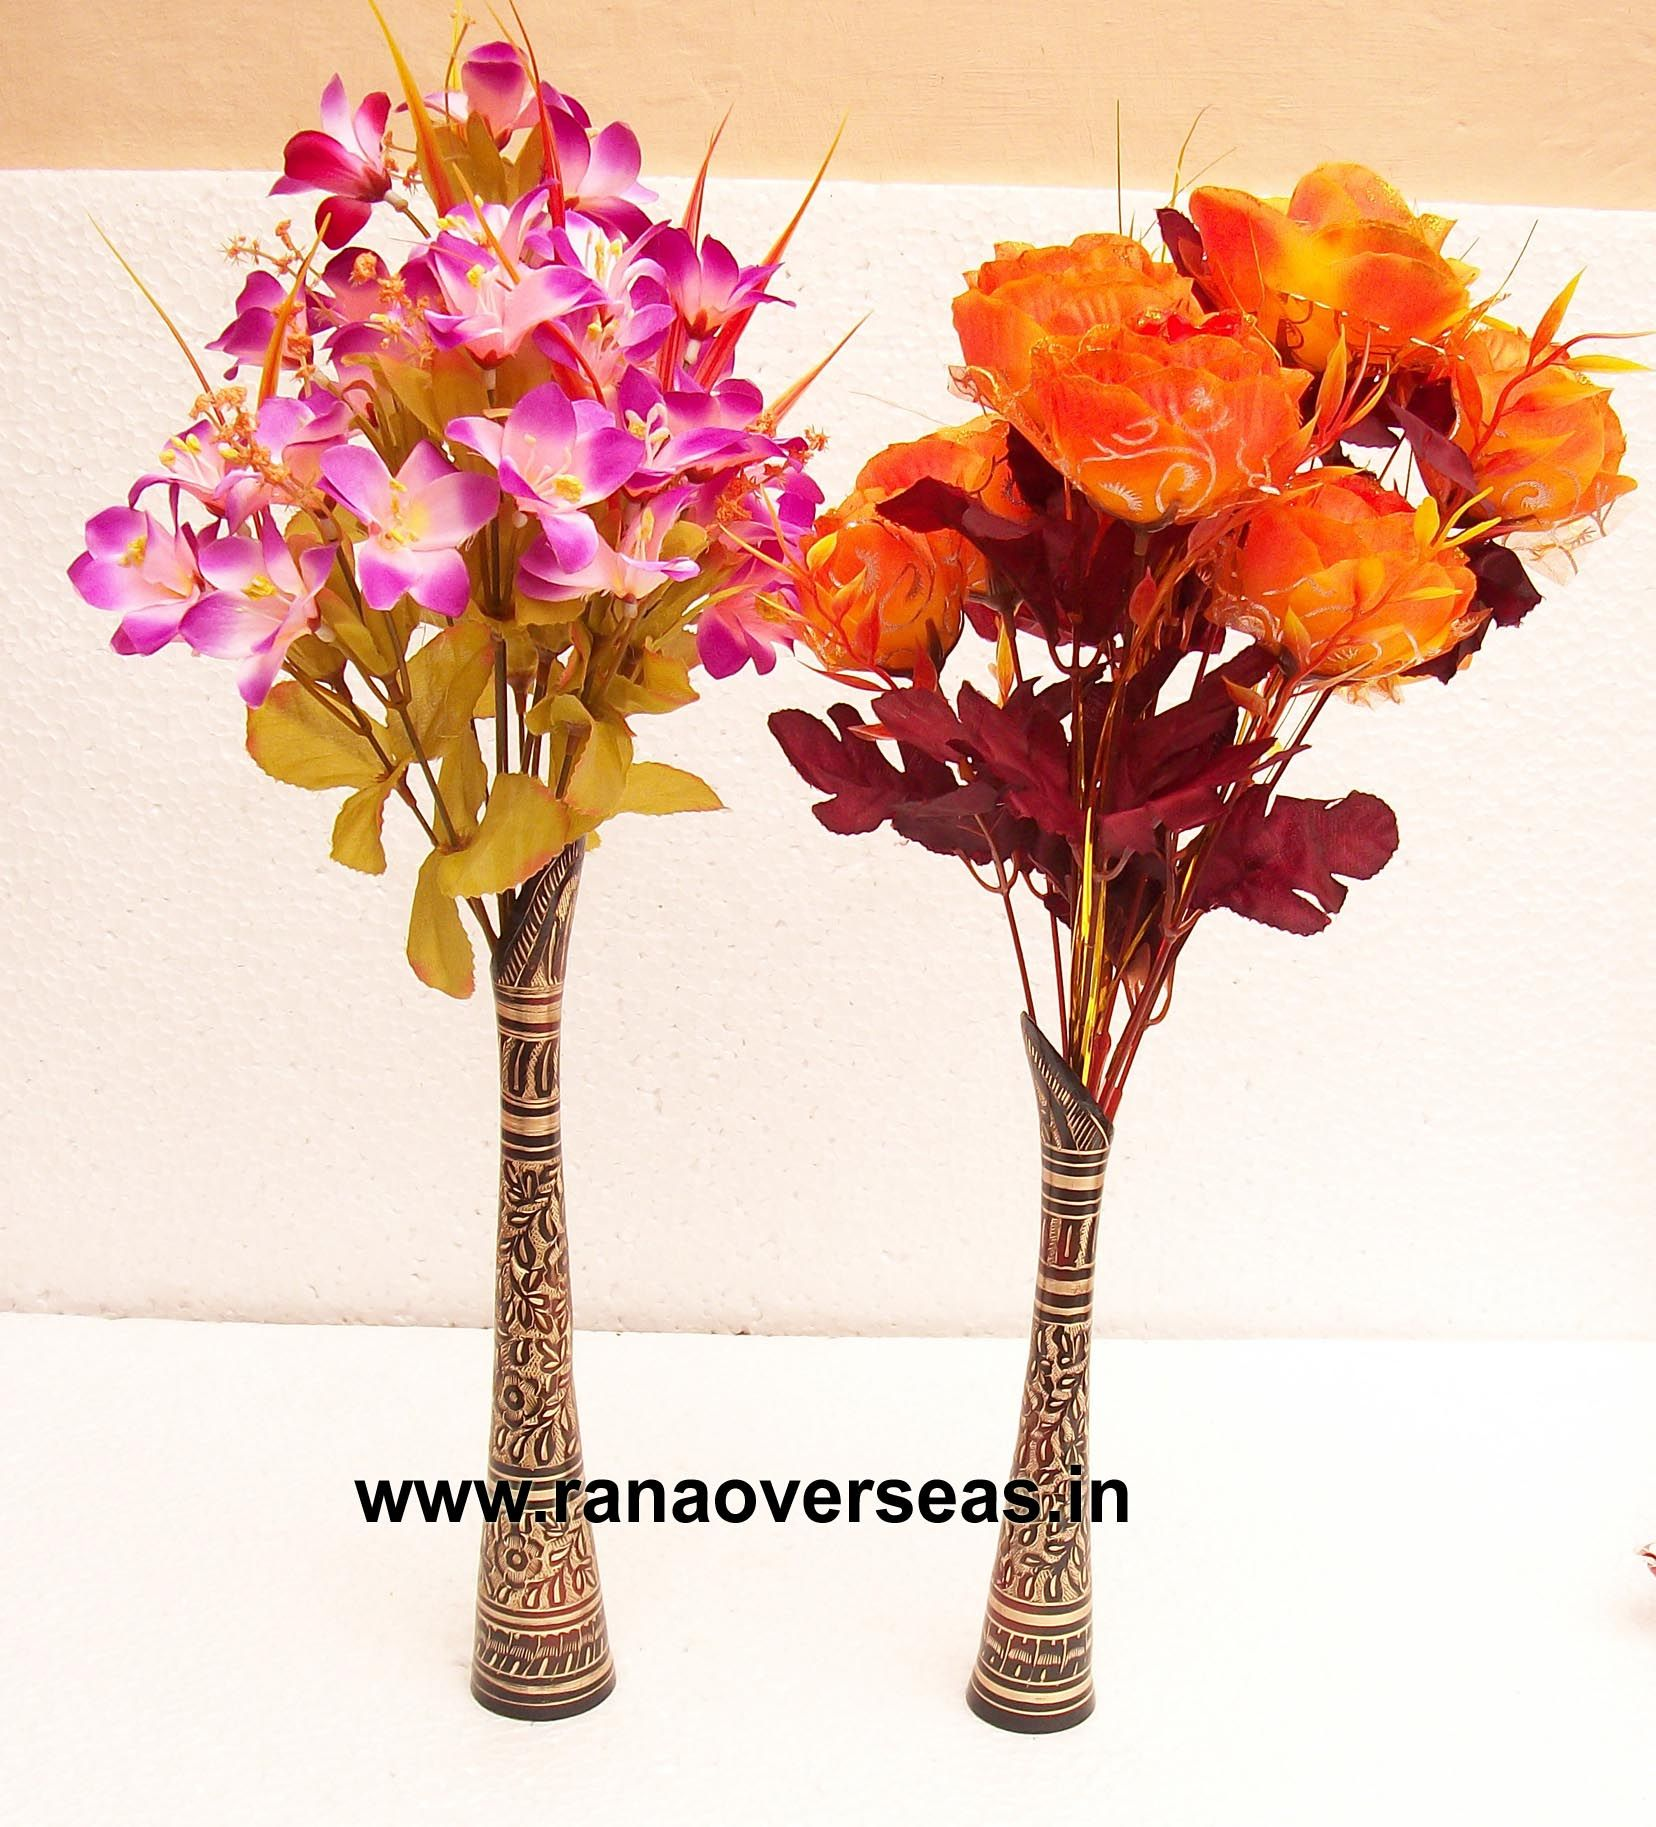 image how ideas design decorate beautiful flowers flower vase backyards landscaping vases to